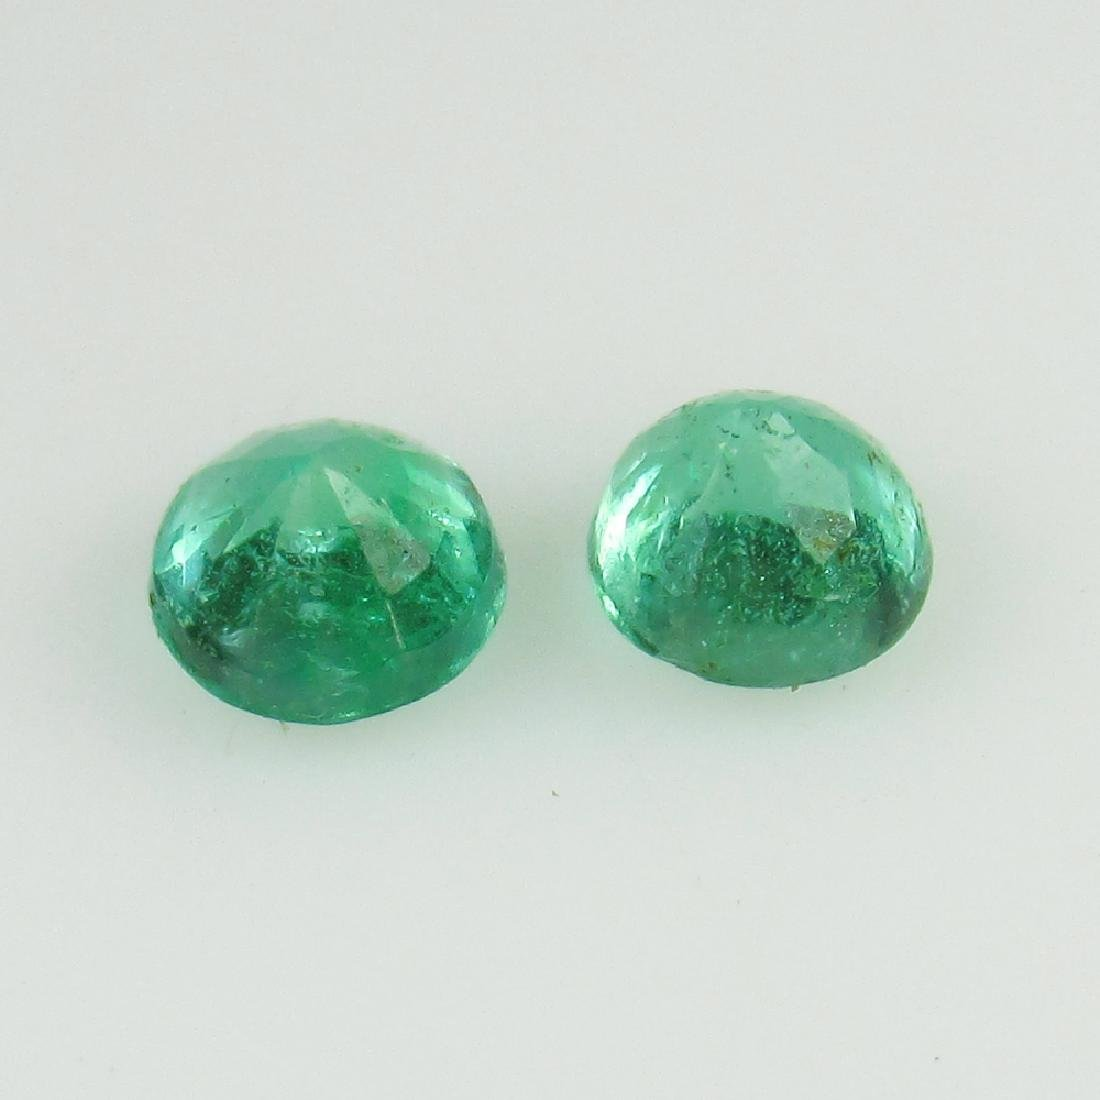 0.58 Ct Genuine Loose Zambian Emerald 4.2 mm Round Pair - 2